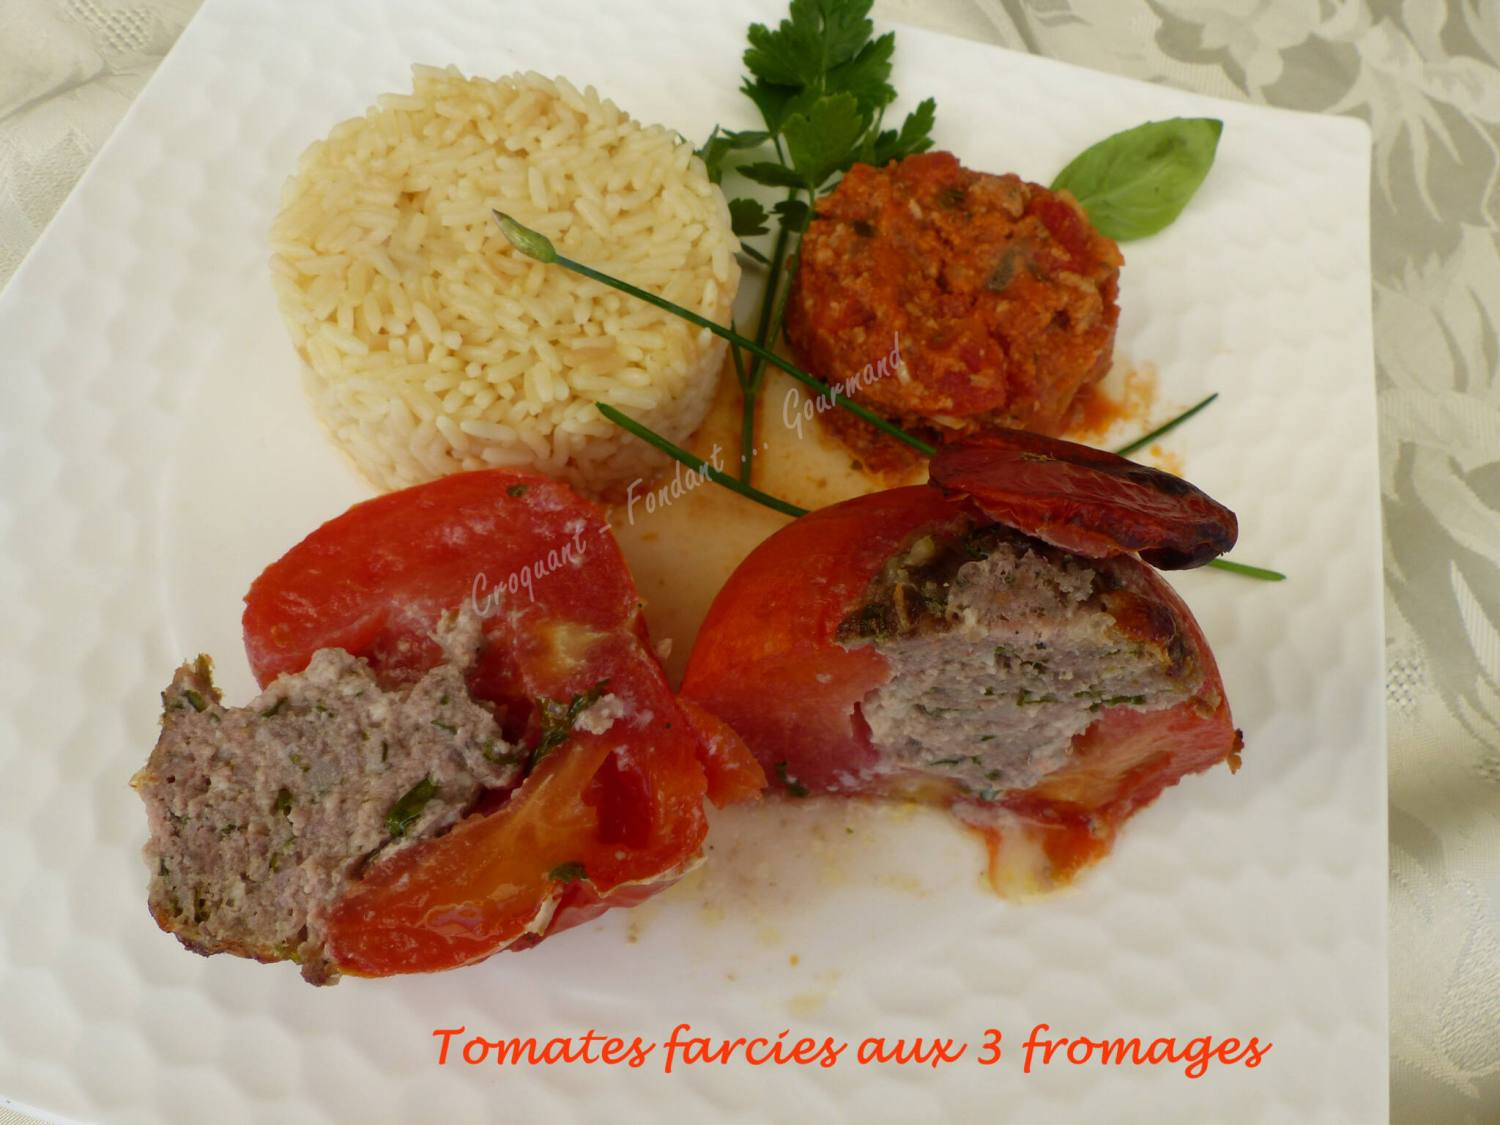 Tomates farcies aux 3 fromages P1030970